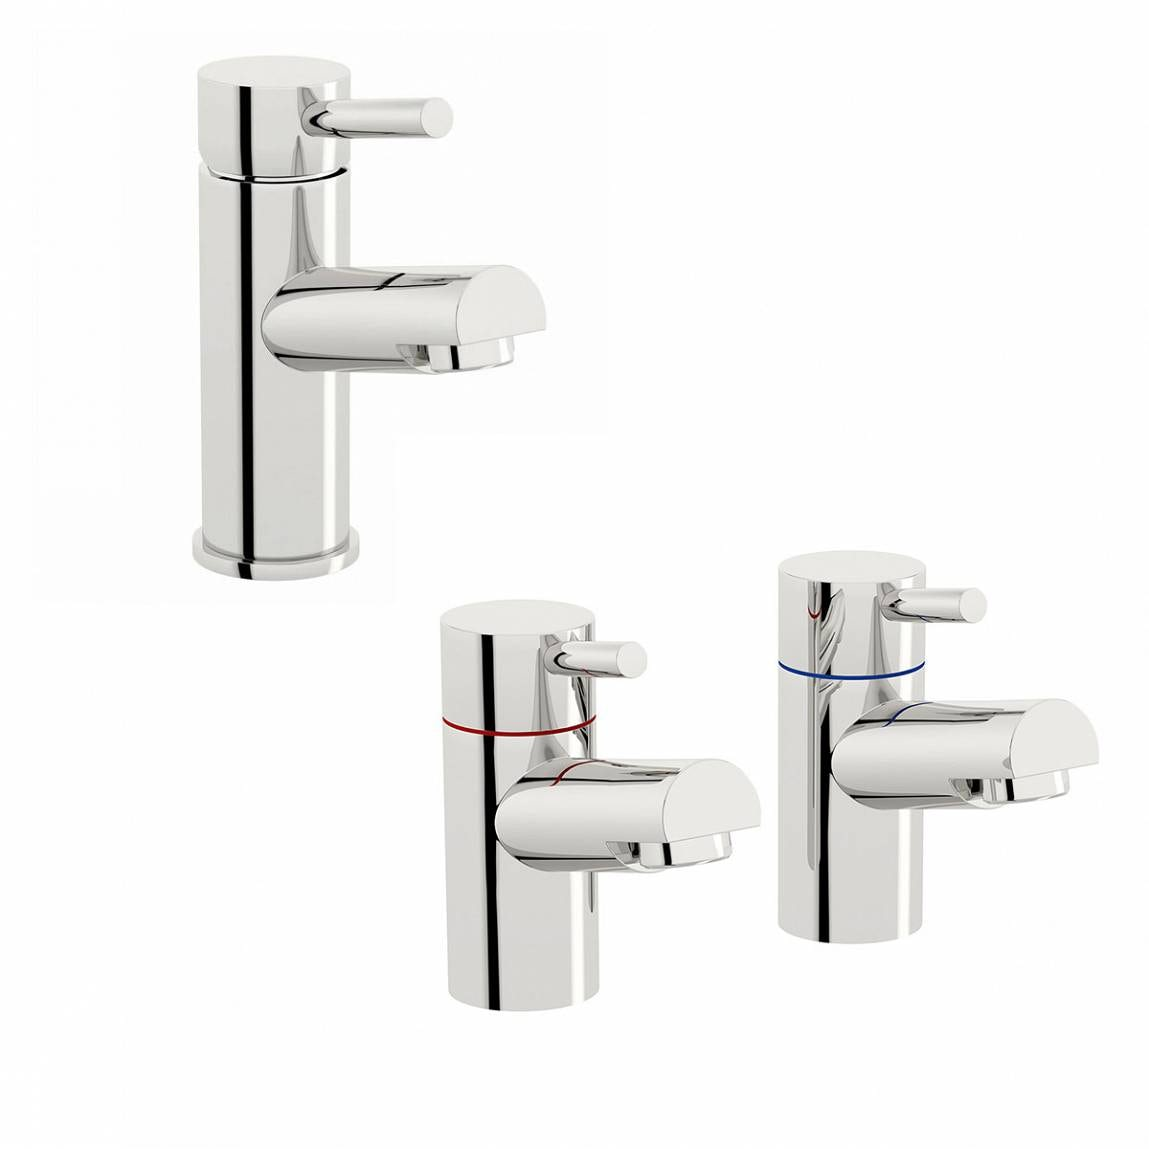 Orchard Wharfe basin mixer and bath tap pack